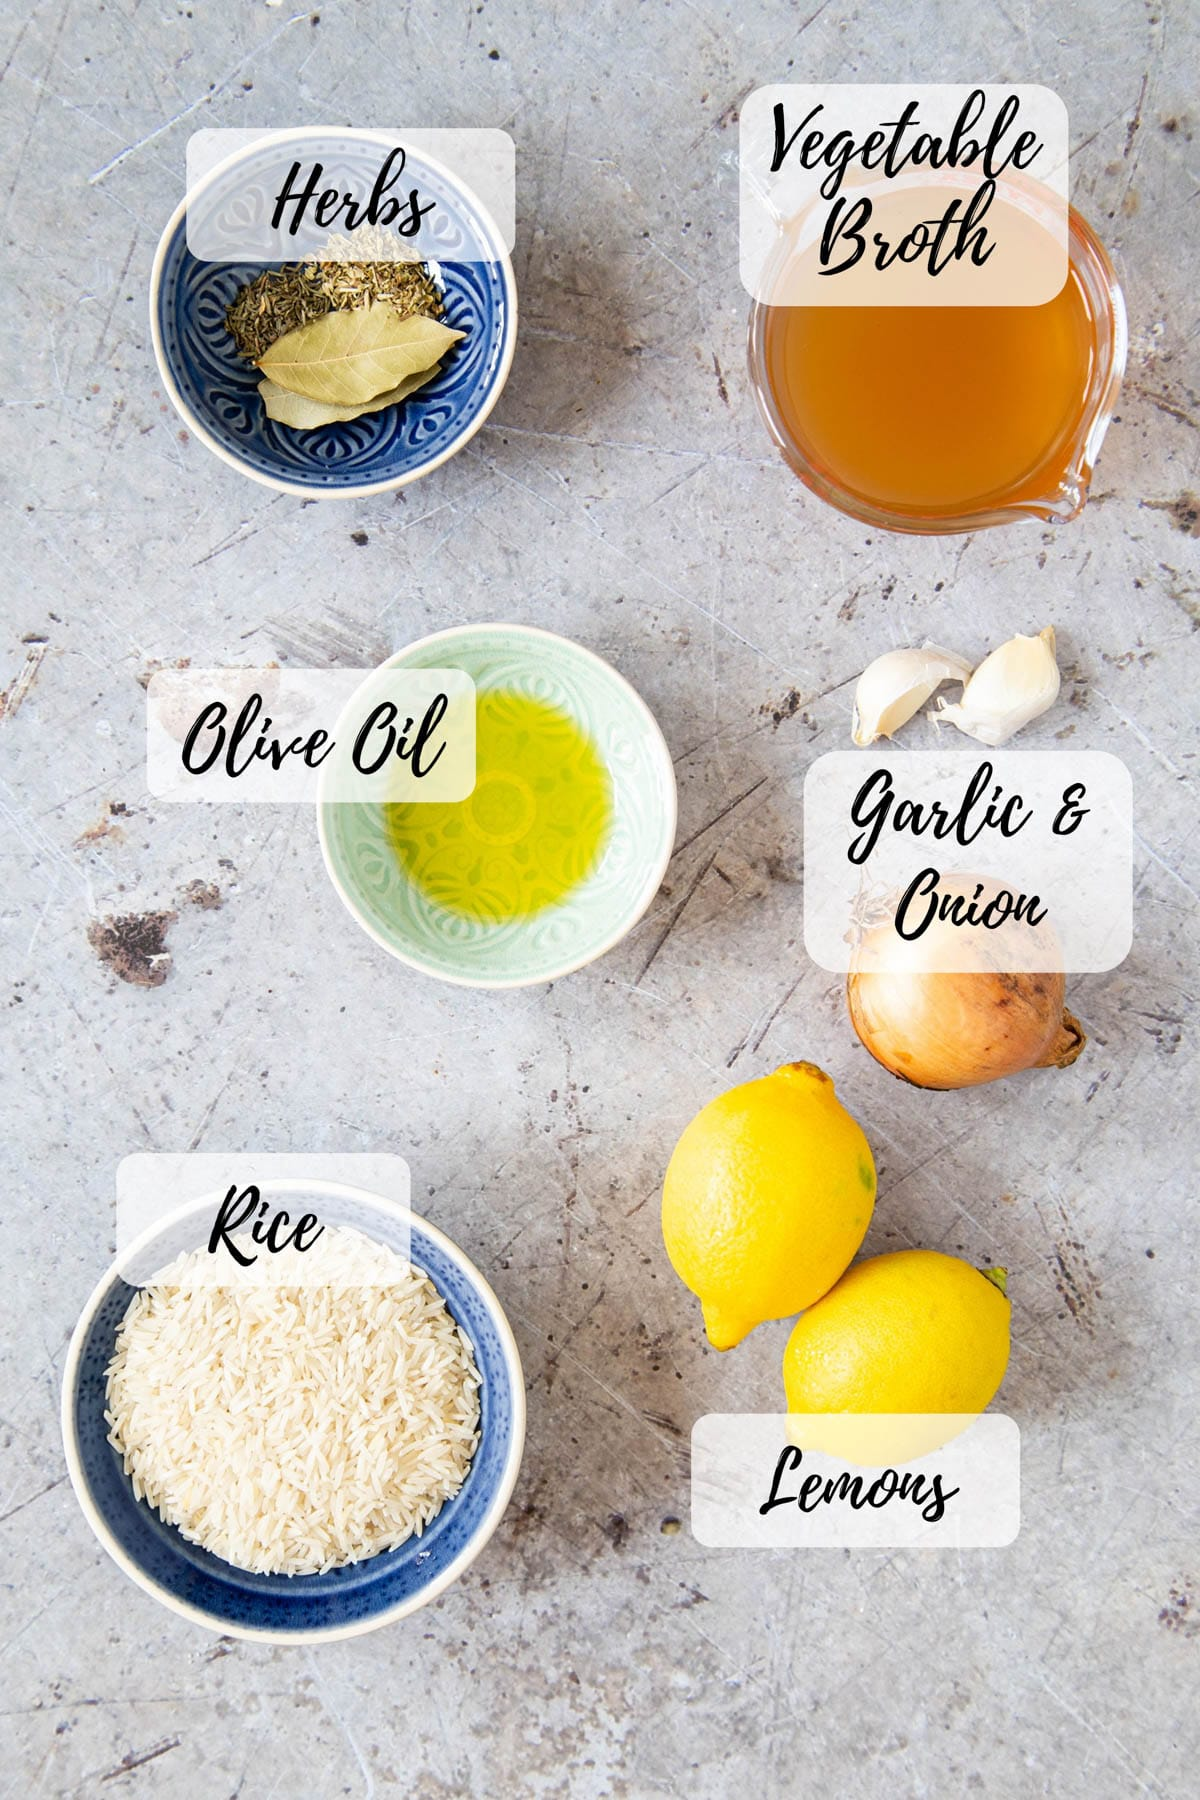 An annotated top down picture of ingredients for Greek rice: rice, garlic, onion, lemon, herbs, vegetable broth, and olive oil.